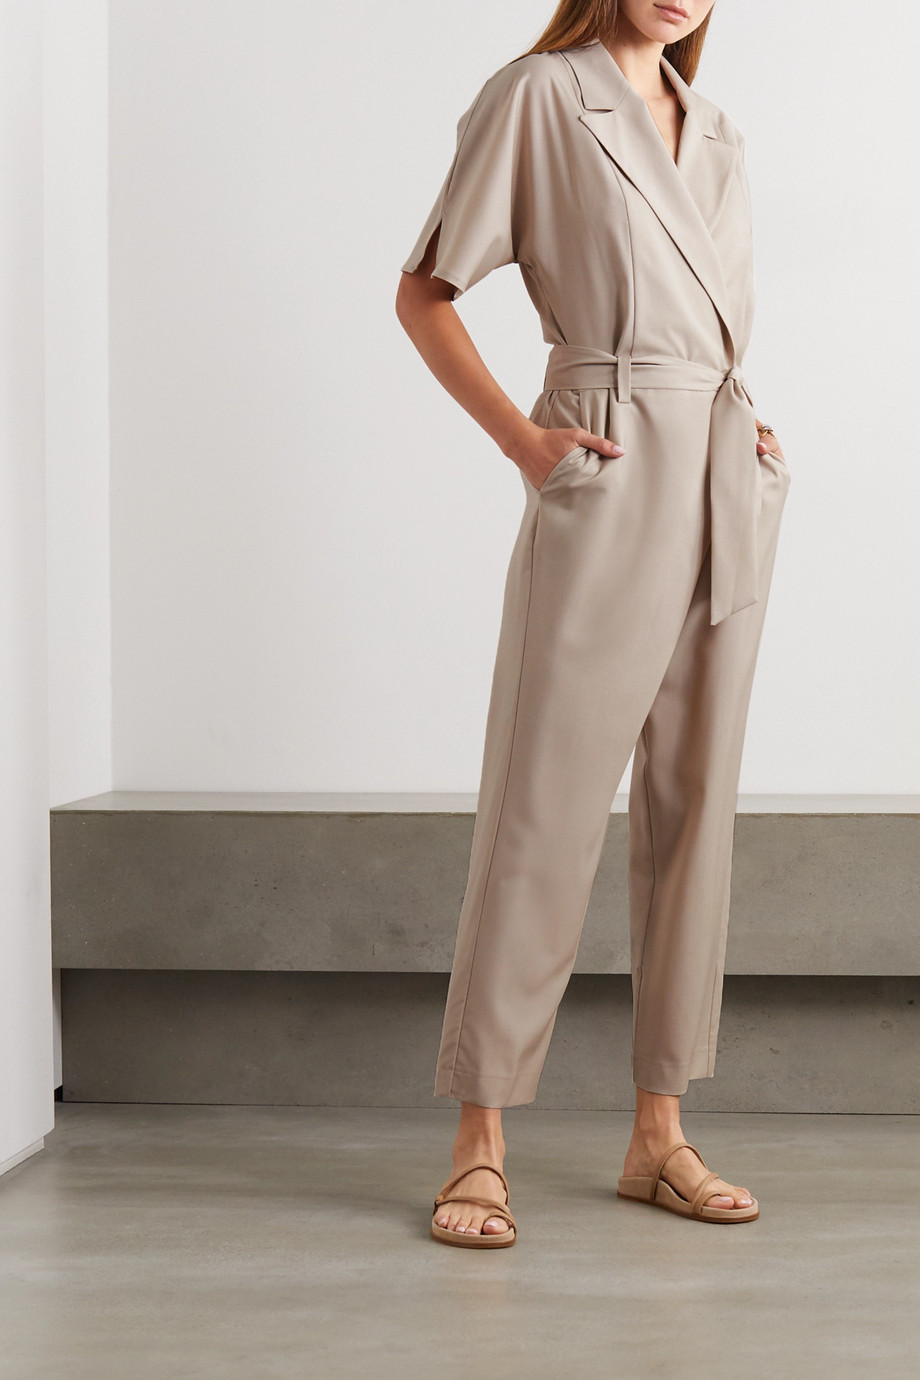 Envelope1976 + NET SUSTAIN Casablanca wool-crepe wrap jumpsuit